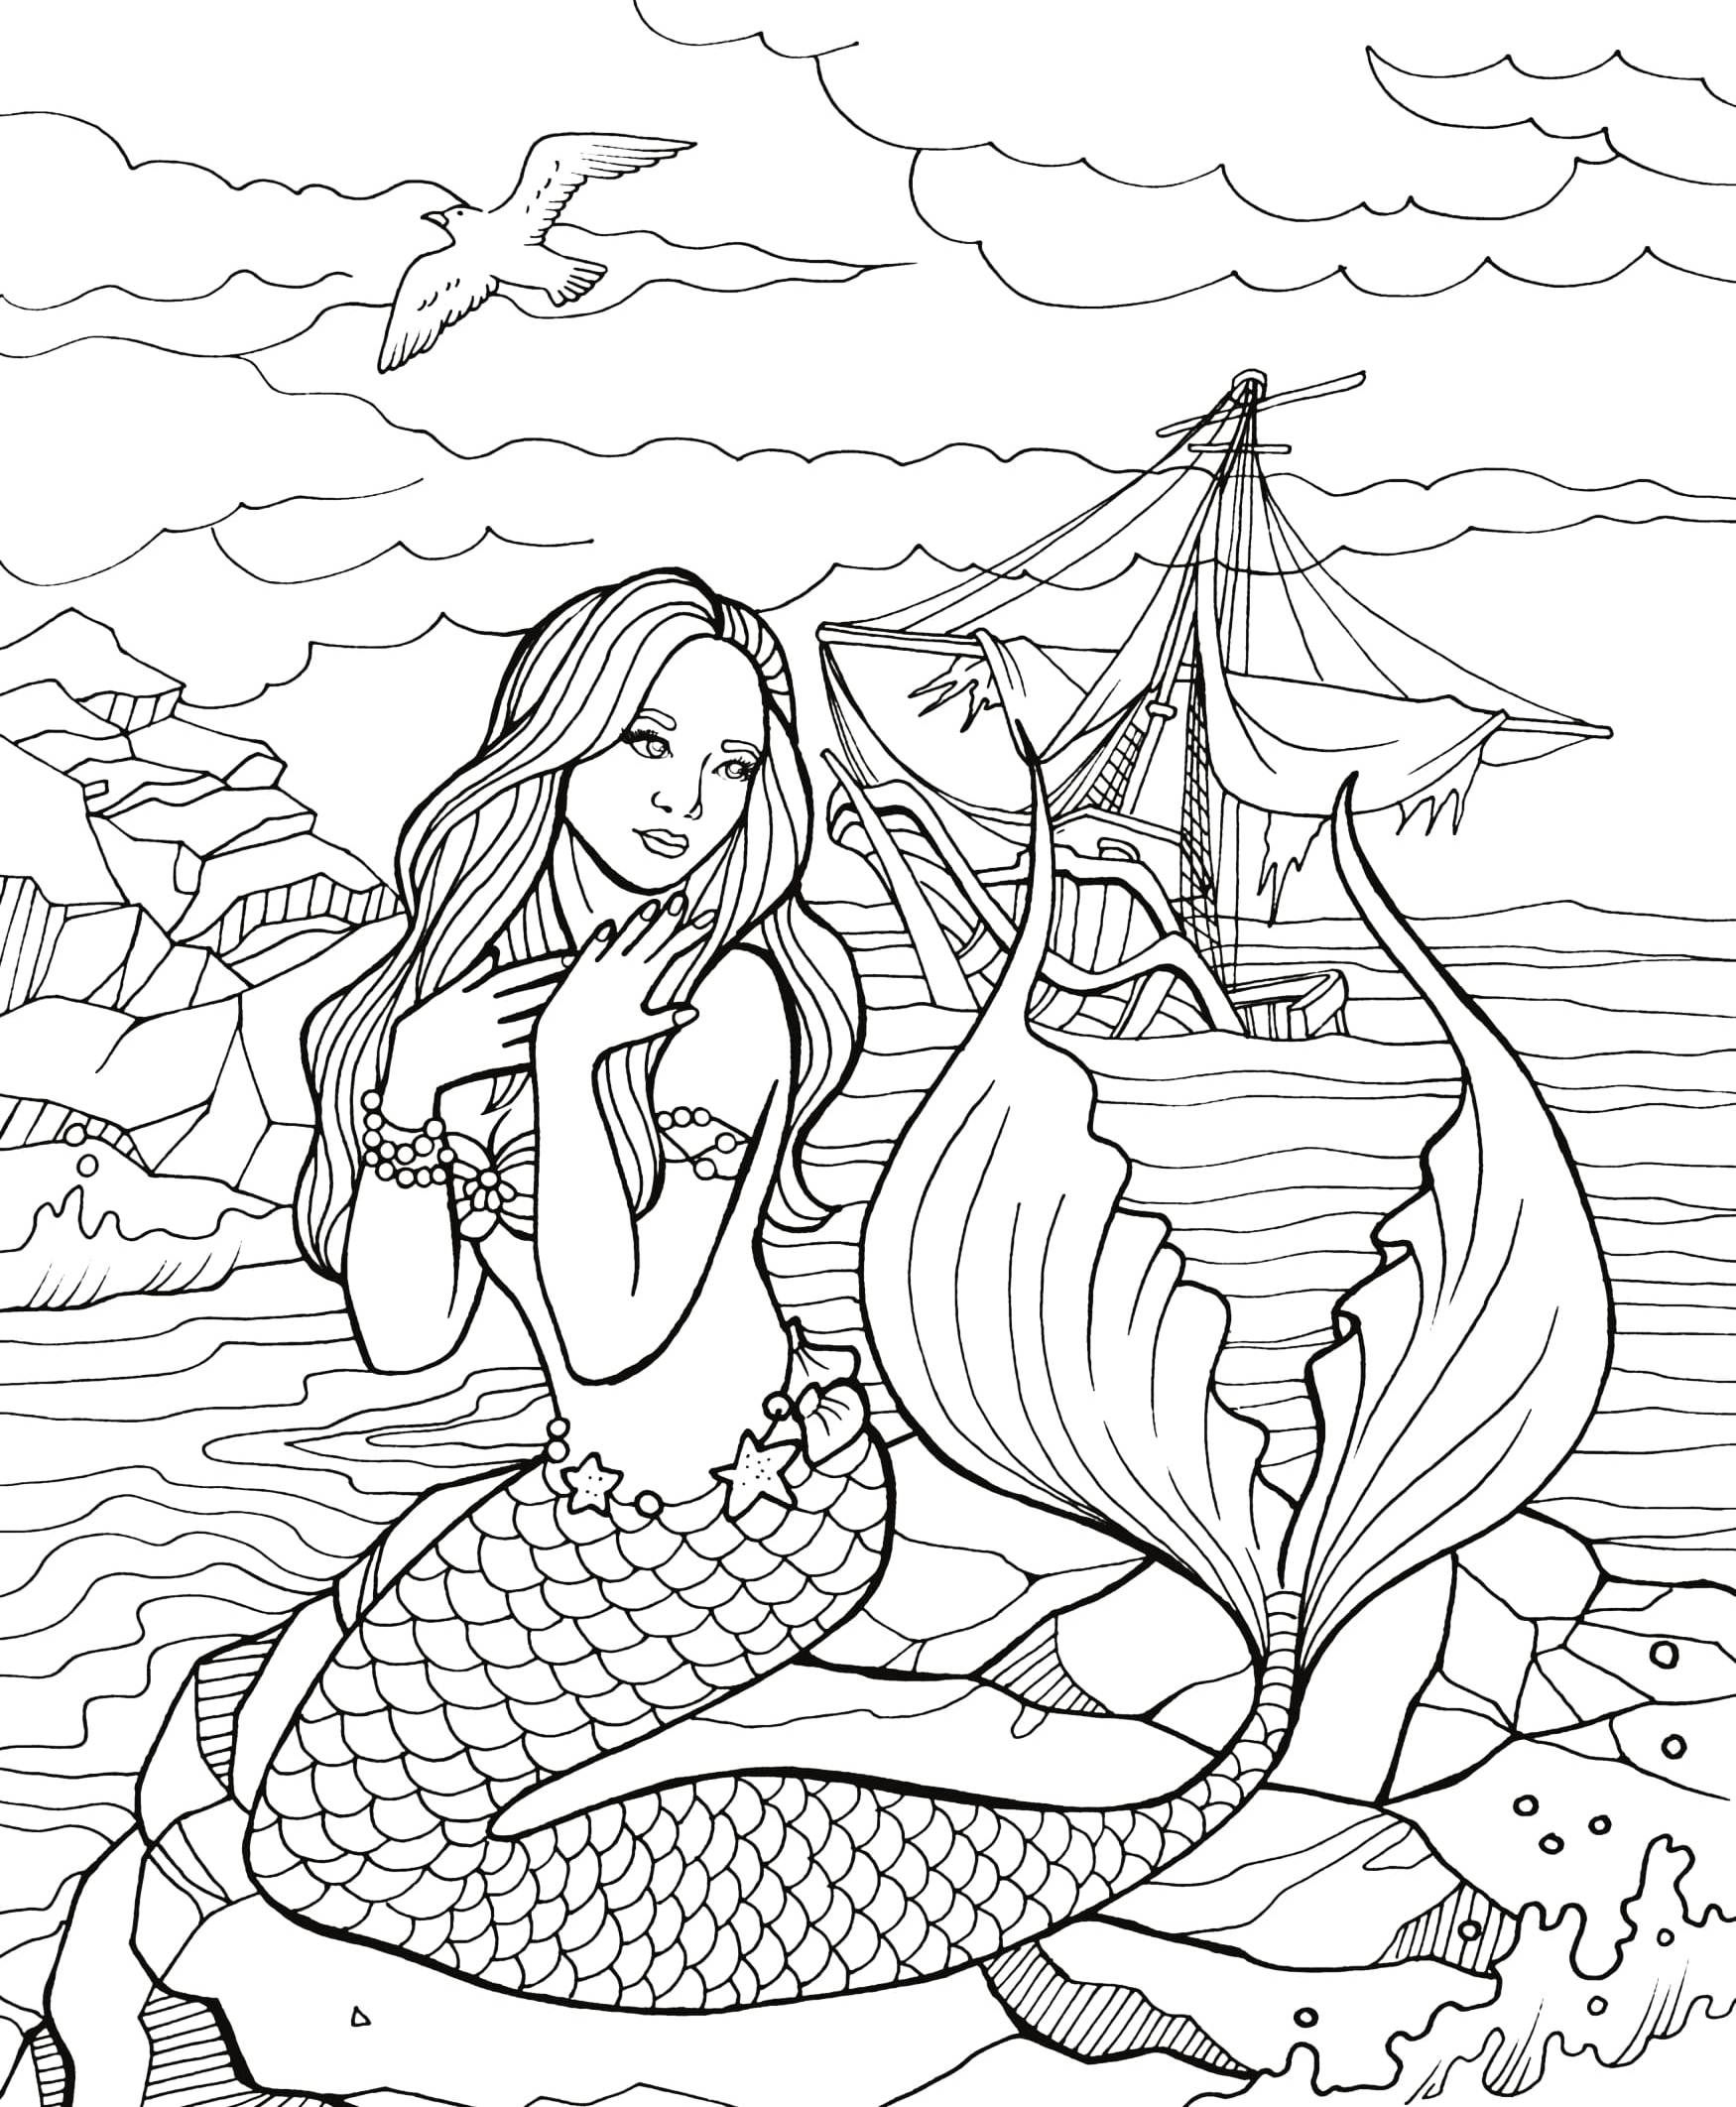 Pin By Stacyroller On Color Time Mermaid Coloring Pages Fairy Coloring Pages Mermaid Drawings [ 2124 x 1750 Pixel ]